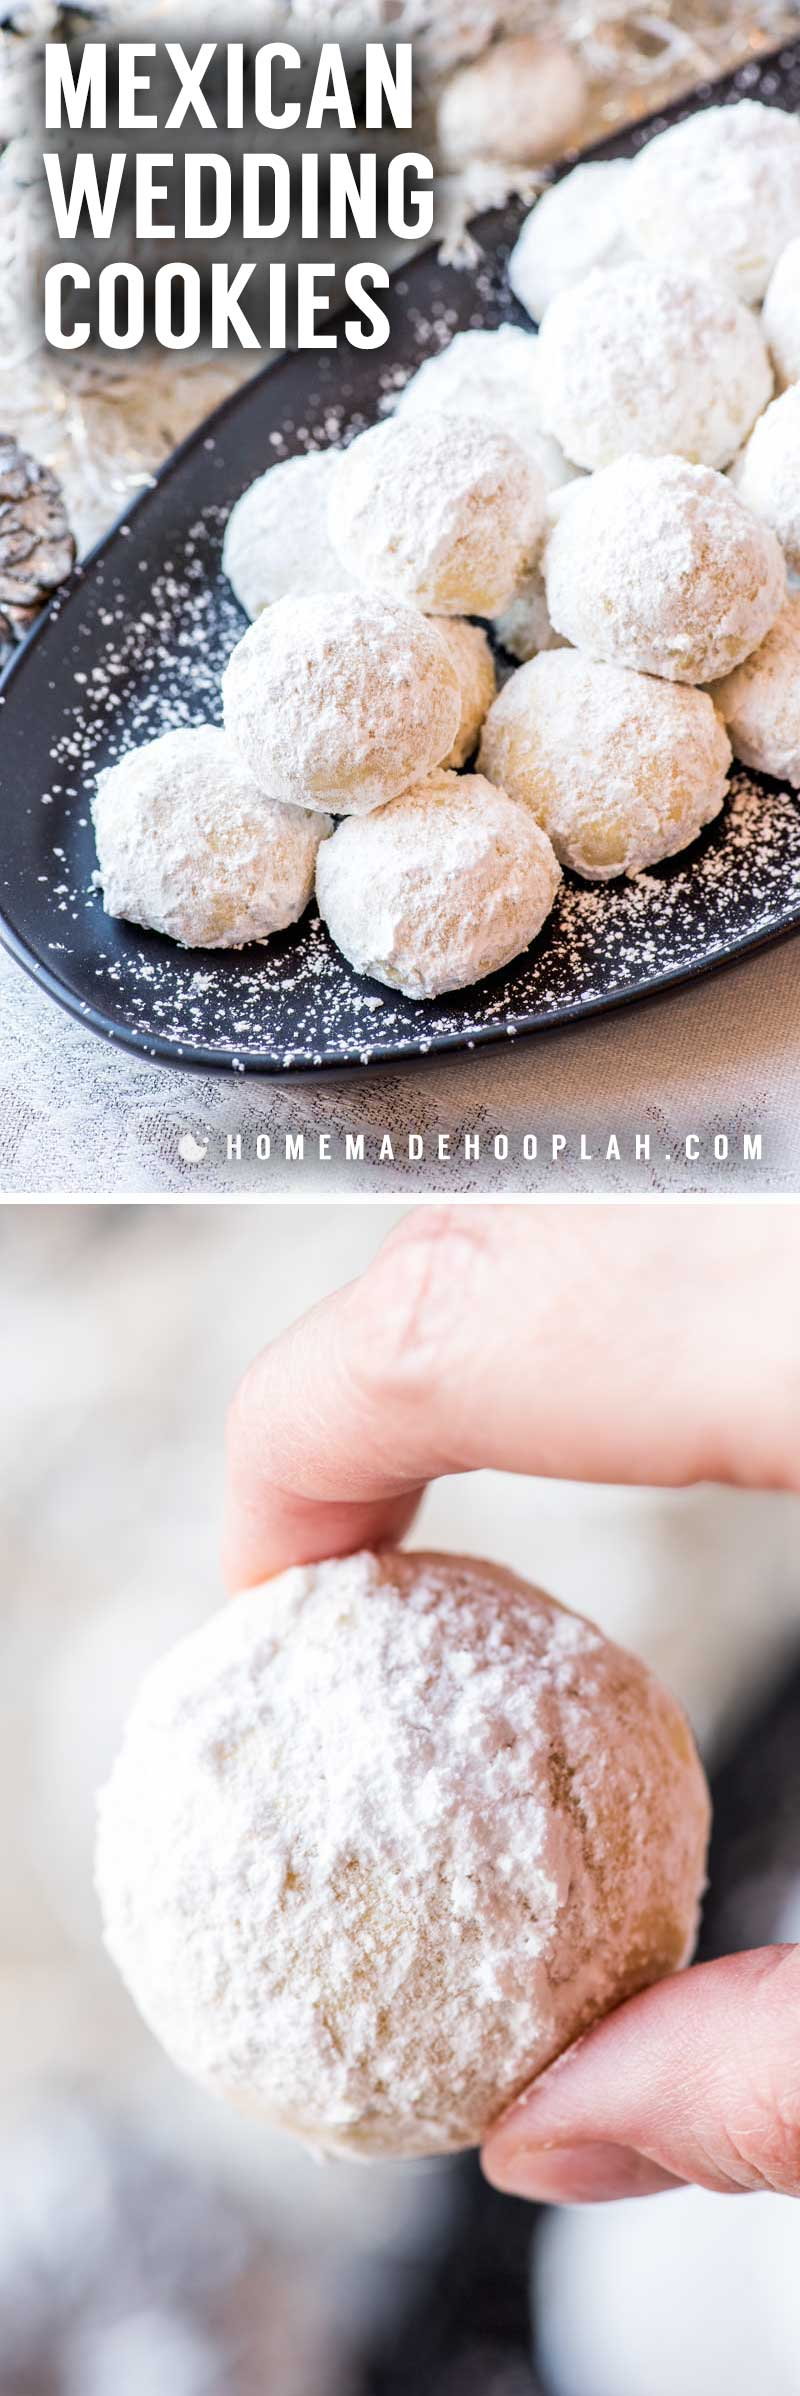 Mexican Wedding Cookies! These teacakes go by many names, but the delicious taste remains the same: a sugar-covered almond cookie with a melt-in-your-mouth texture. | HomemadeHooplah.com